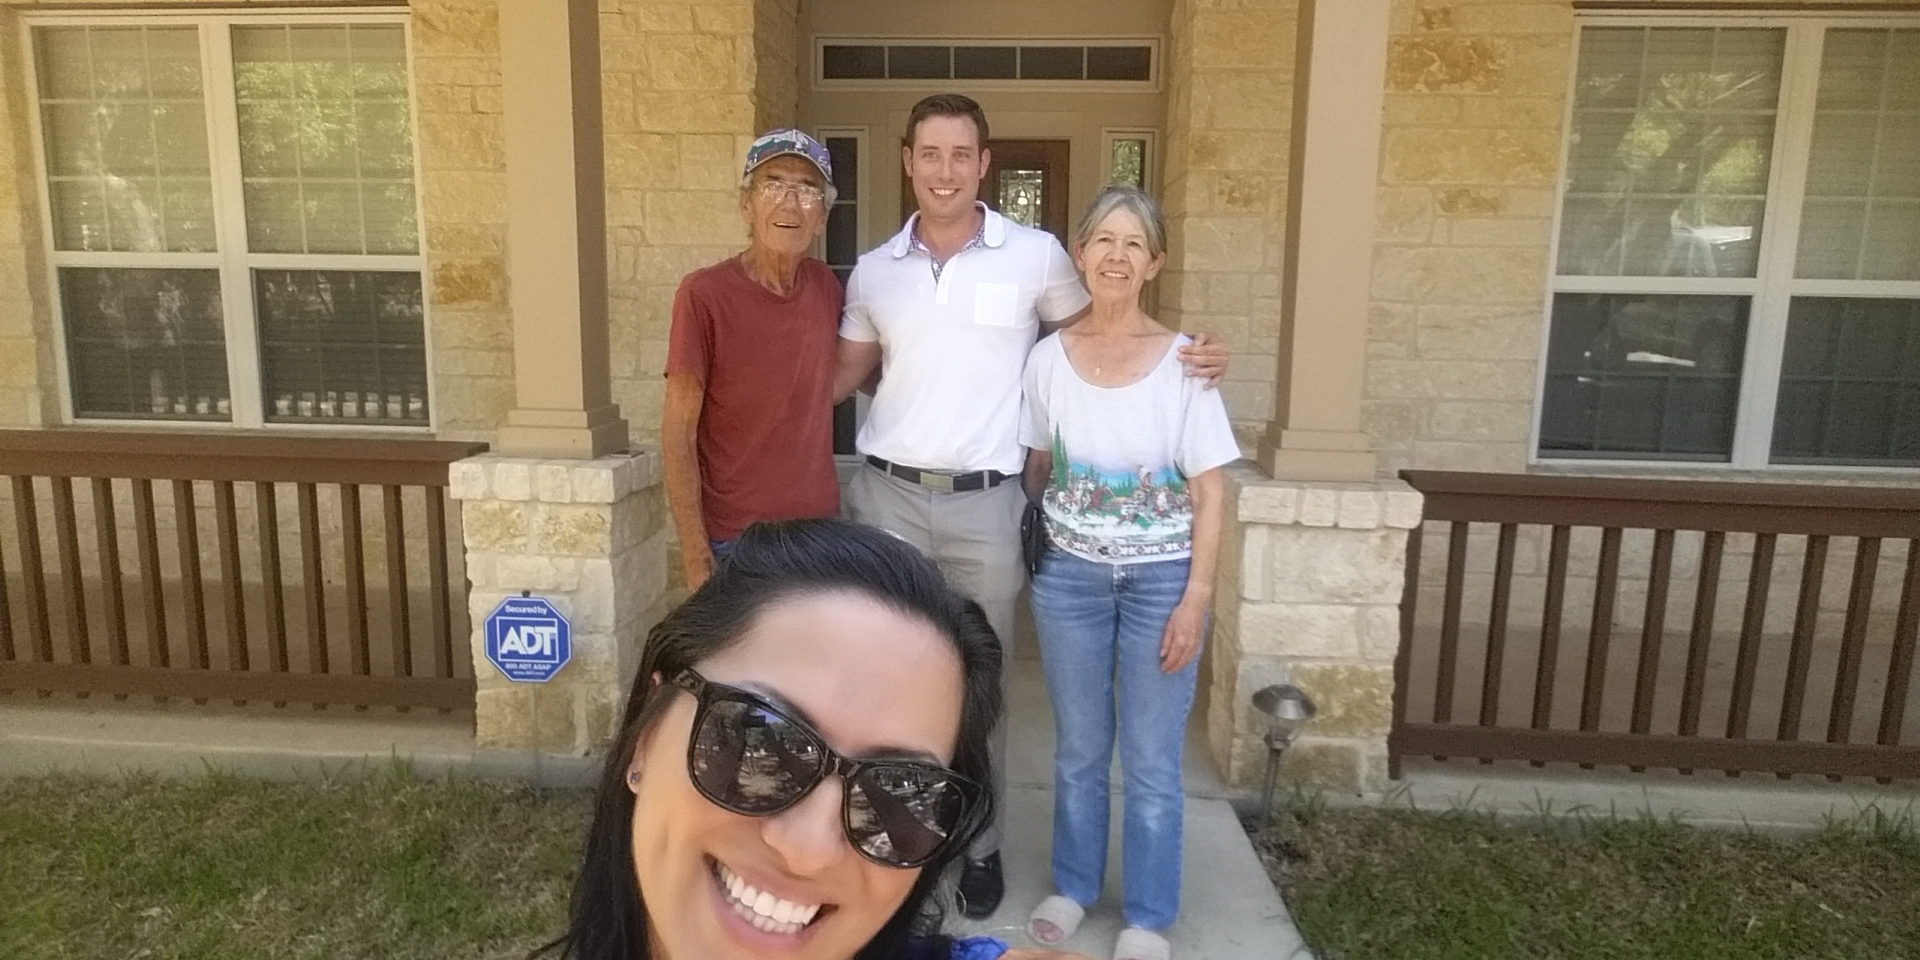 Selfie with our Clients in their new home!